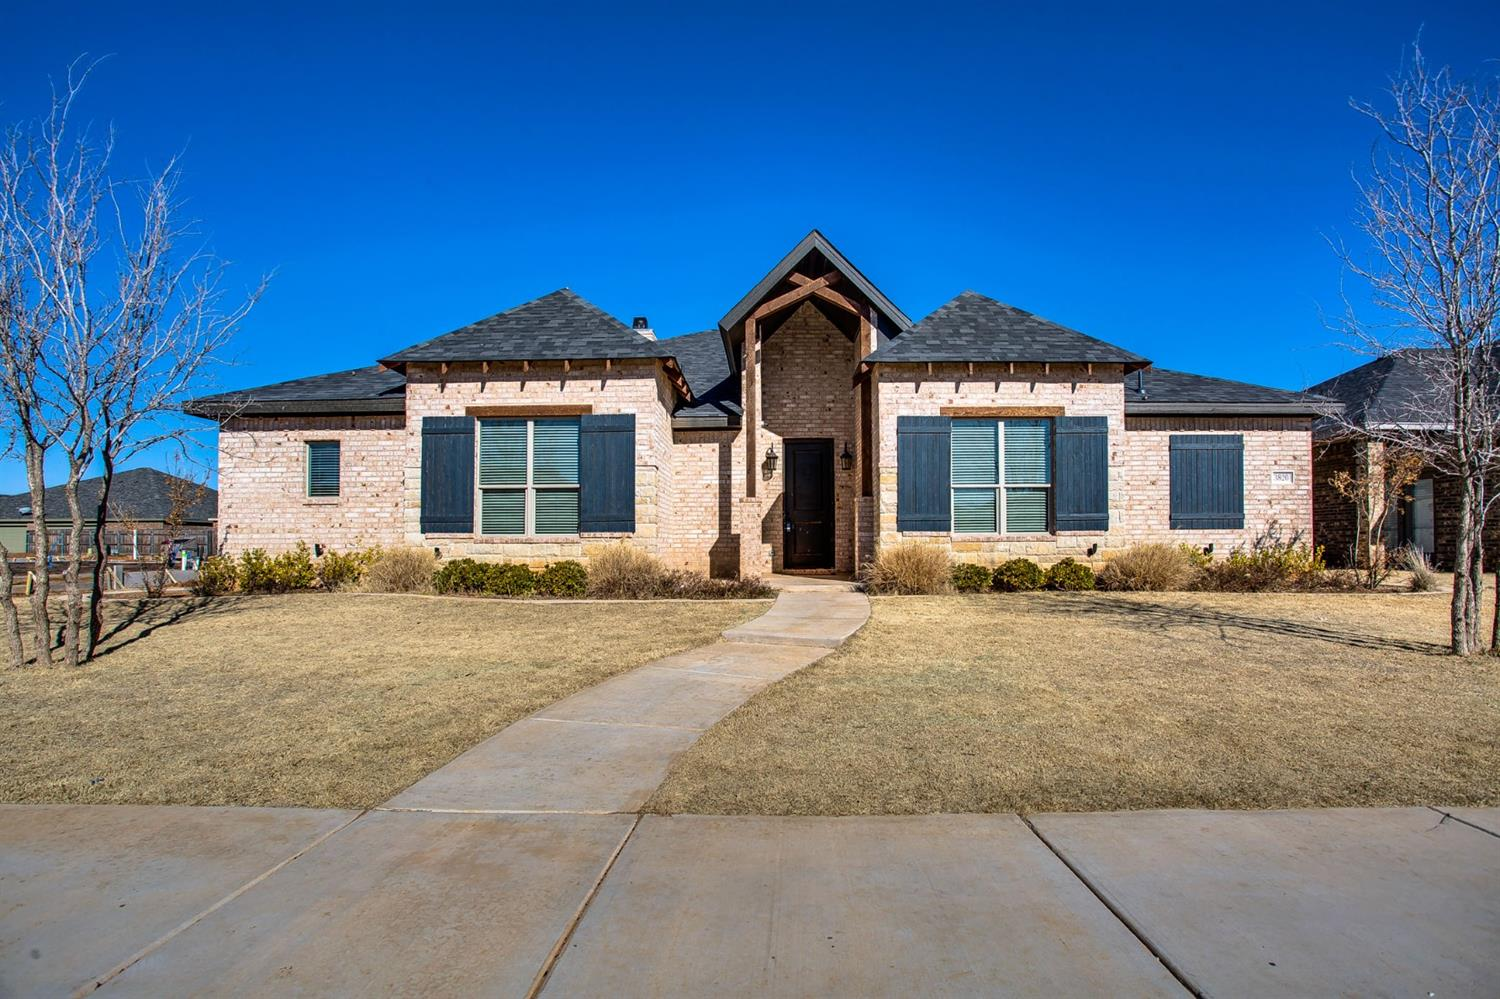 WOW! An incredible find in Kelsey Park! This incredible 4/3/2 built by Clearview Custom homes is a 10+! With over 2200 sq ft, this open concept floor plan features an immaculate kitchen, plenty of storage, spacious bedrooms, and Cooper ISD schools! Don't miss this one!